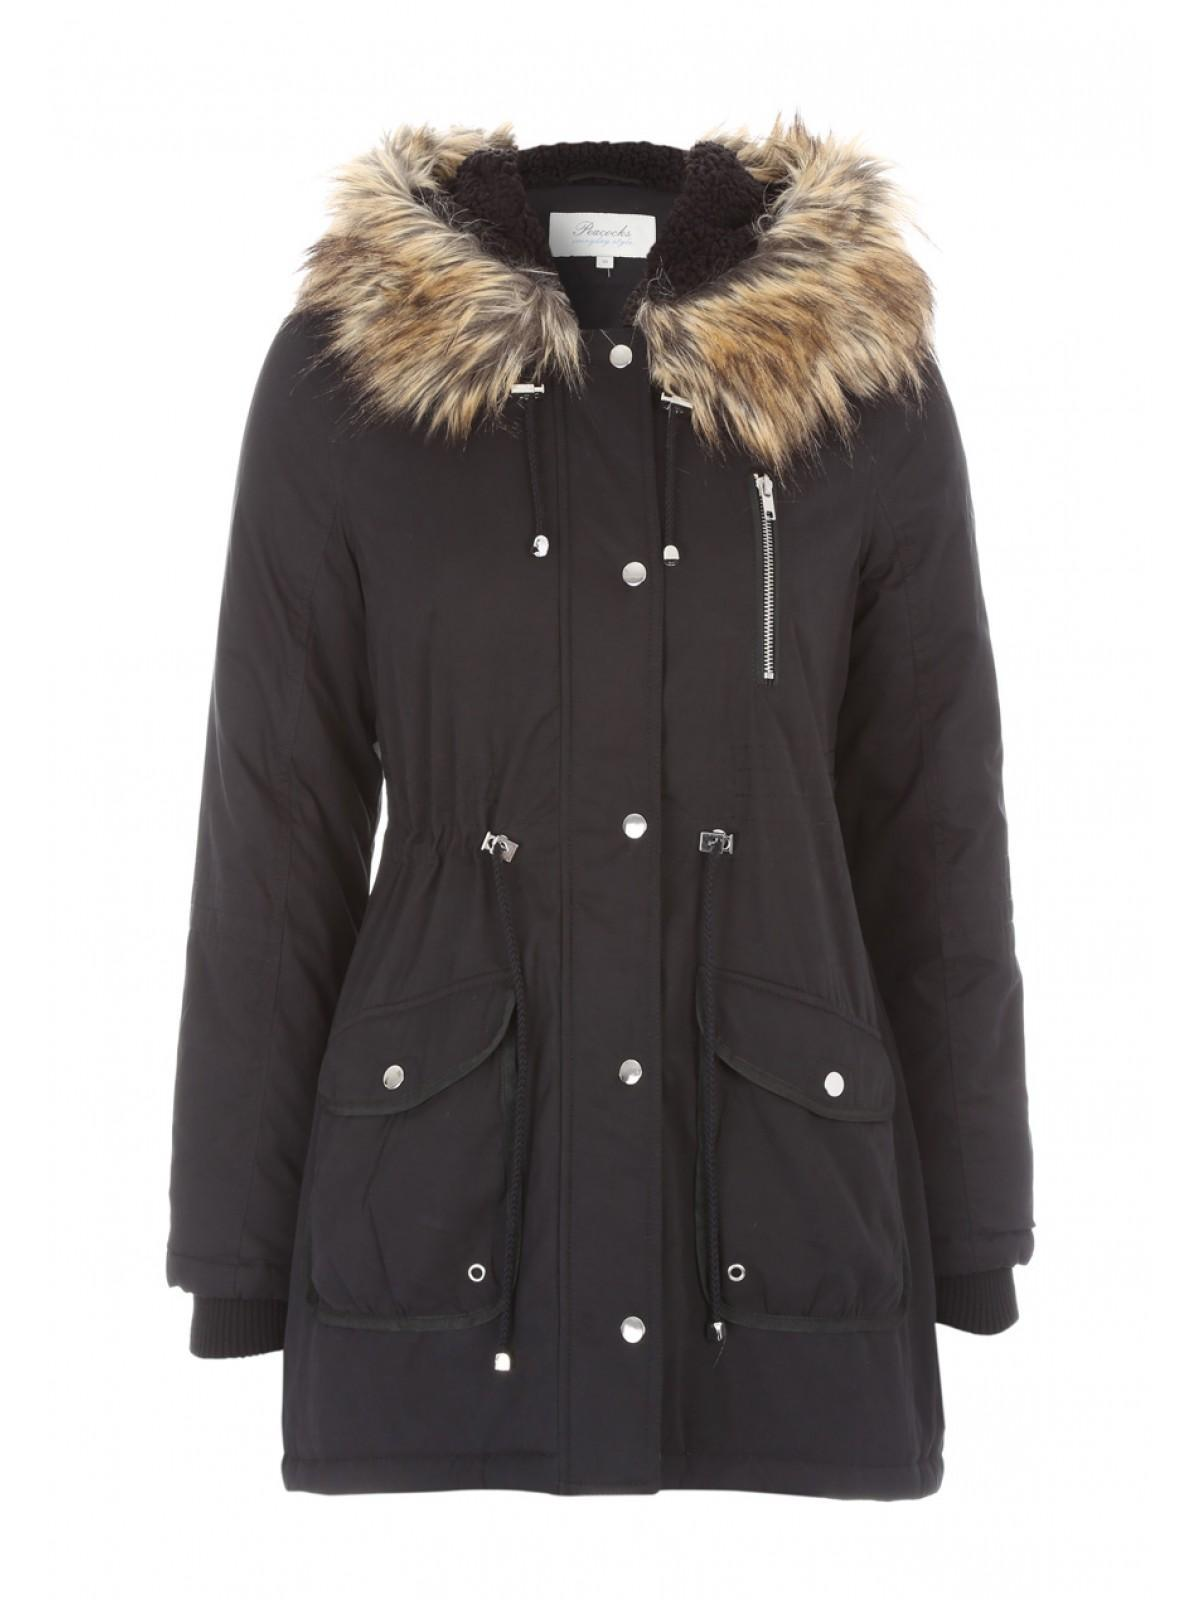 Images of Womens Parka Coats With Fur Hood - Reikian